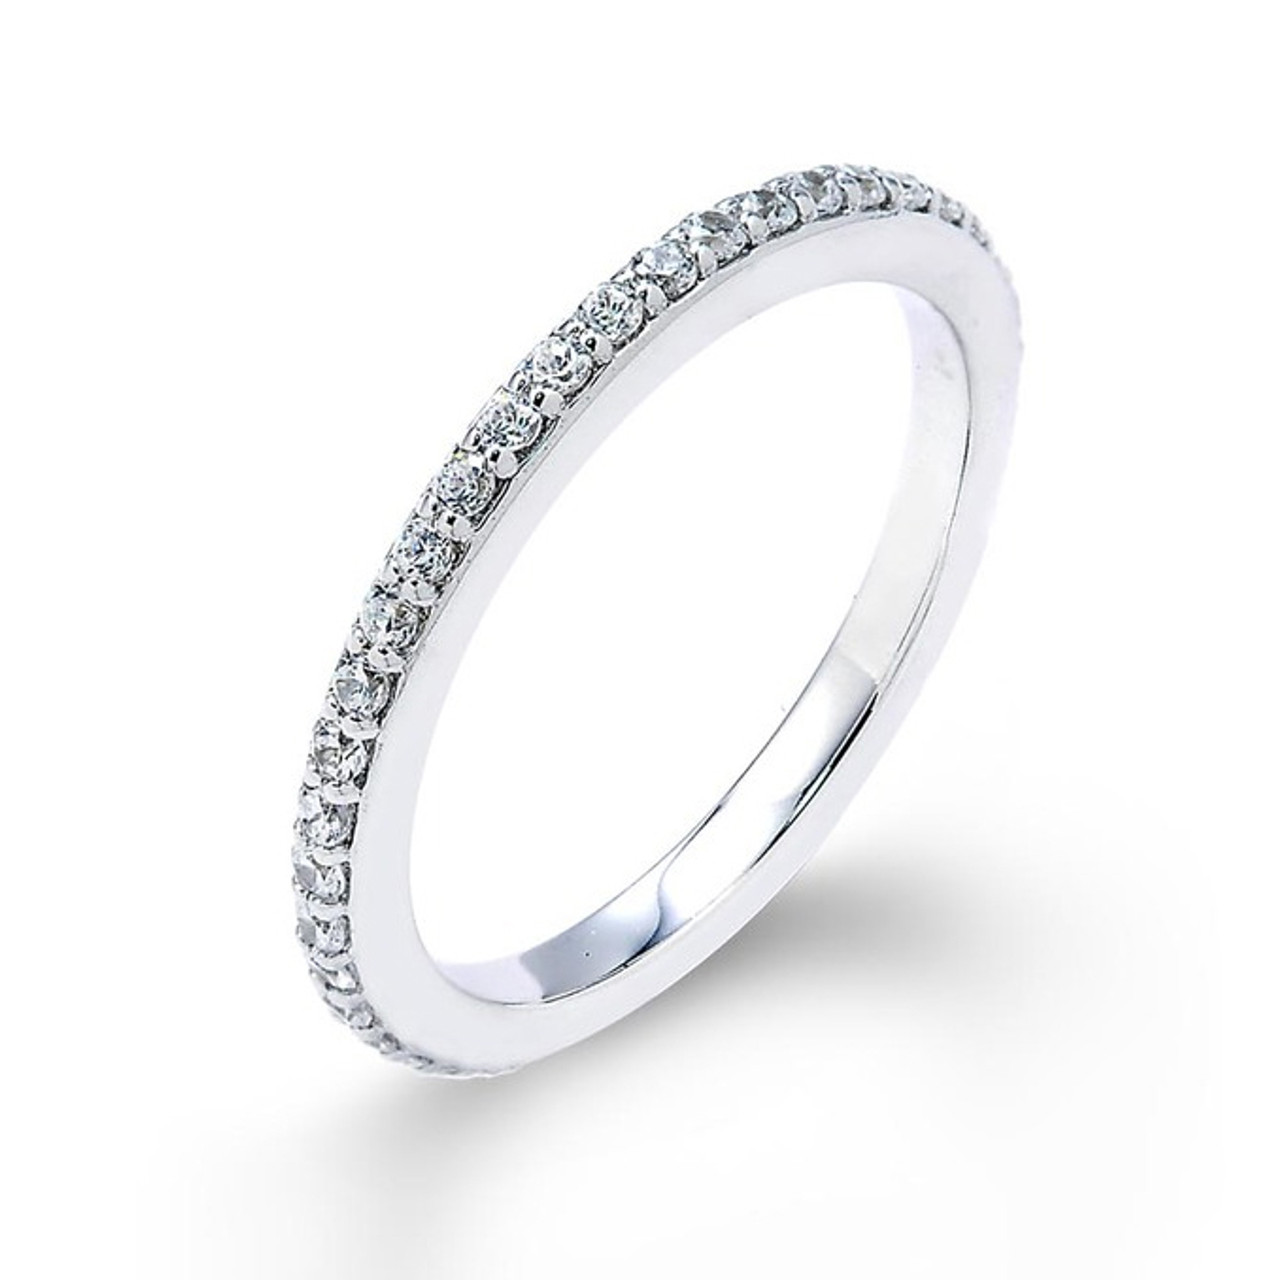 14k White Gold Thin Diamond Studded Eternity Wedding Band